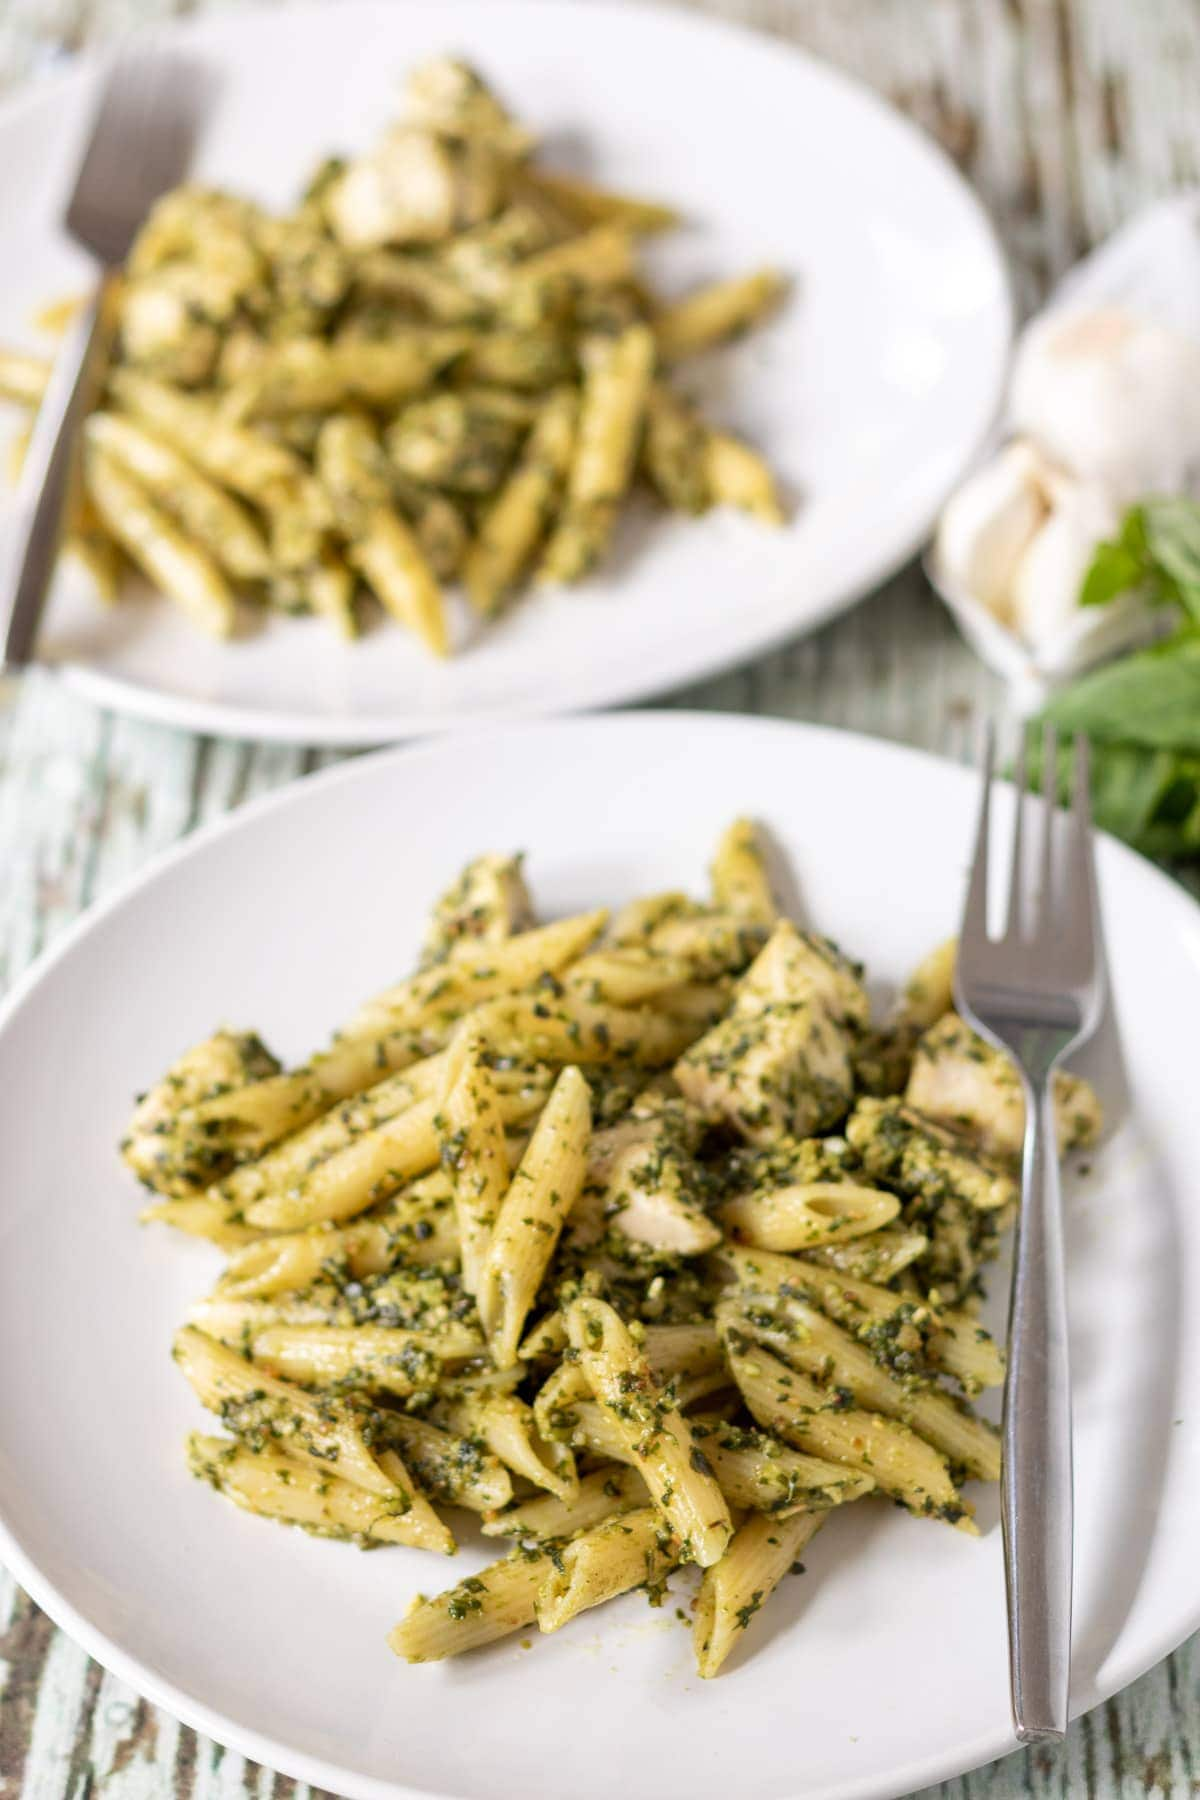 Two plates of chicken pesto pasta with forks on ready to eat.